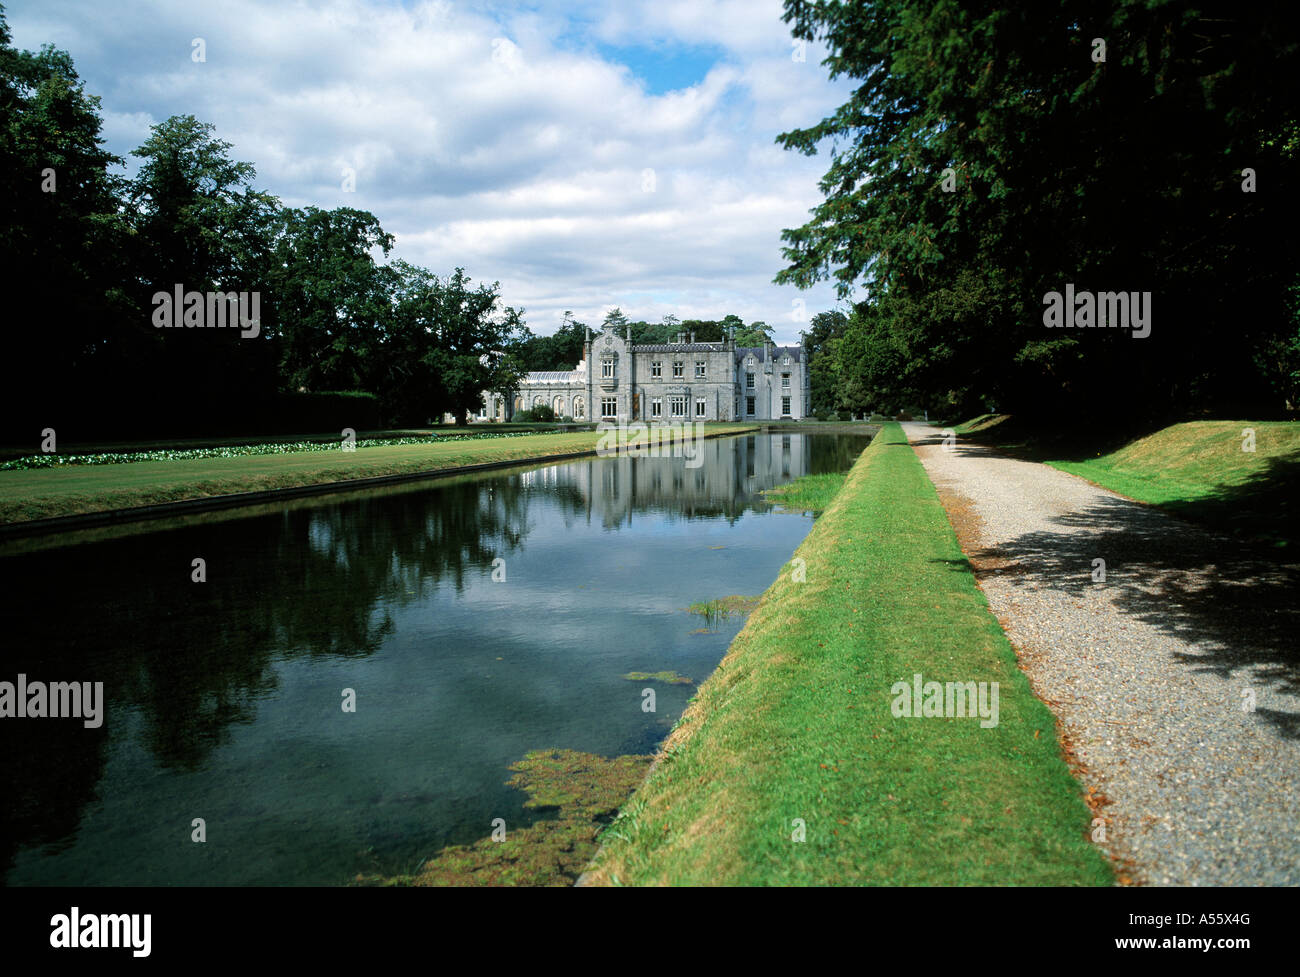 ireland, county wicklow, kilruddery, irish stately home house gardens, large water canal, water display - Stock Image